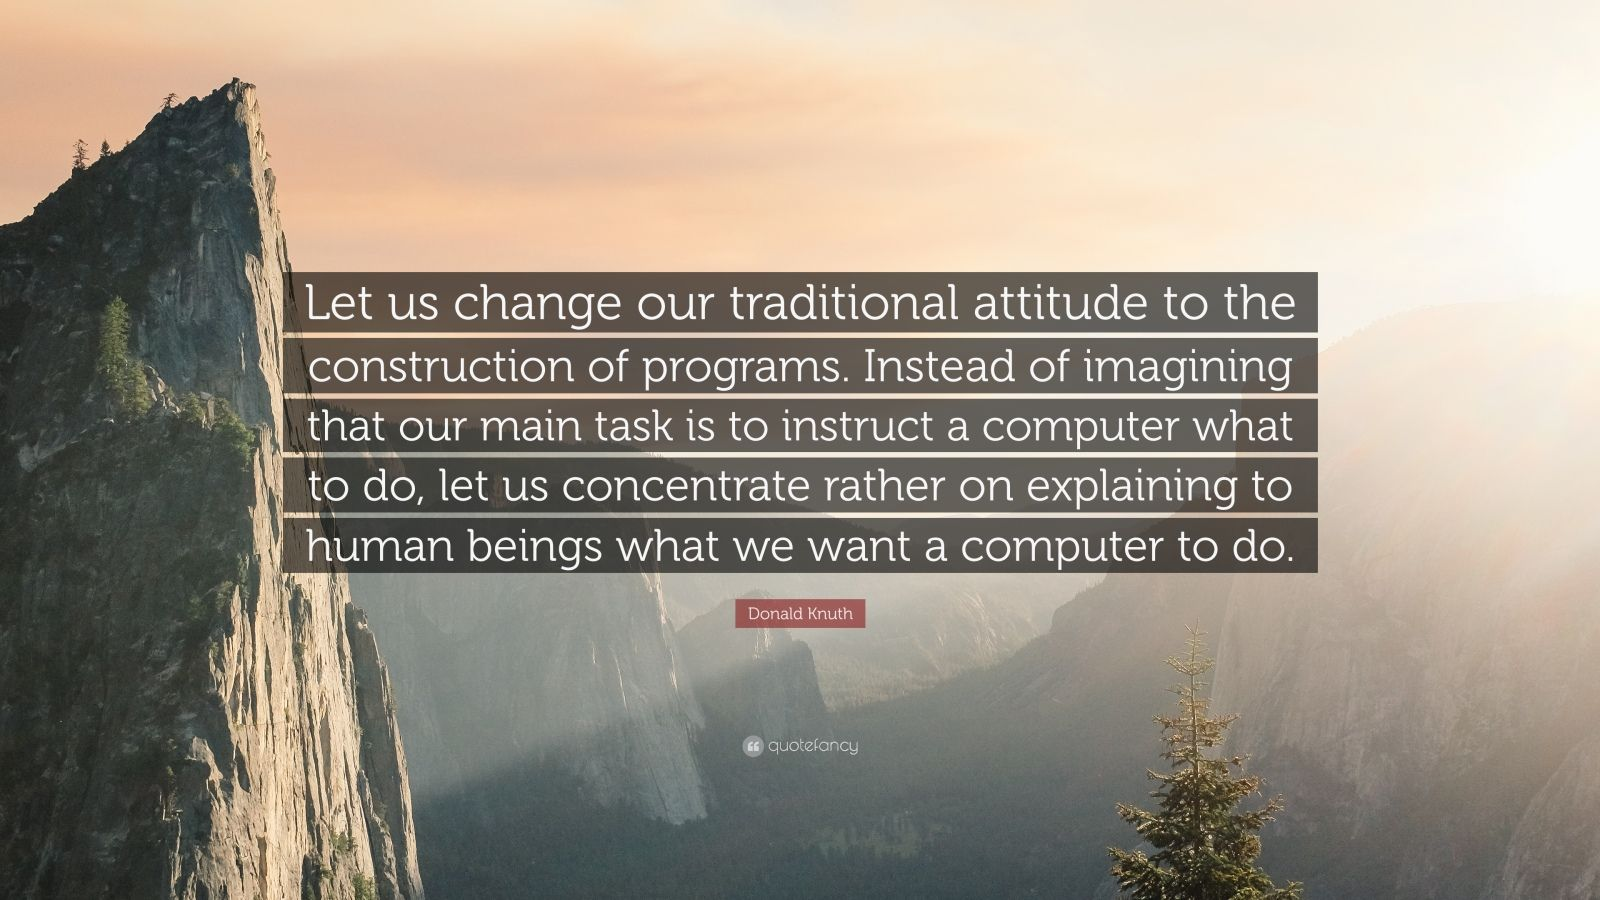 """Donald Knuth Quote: """"Let us change our traditional attitude to the construction of programs. Instead of imagining that our main task is to instruct a computer what to do, let us concentrate rather on explaining to human beings what we want a computer to do."""""""